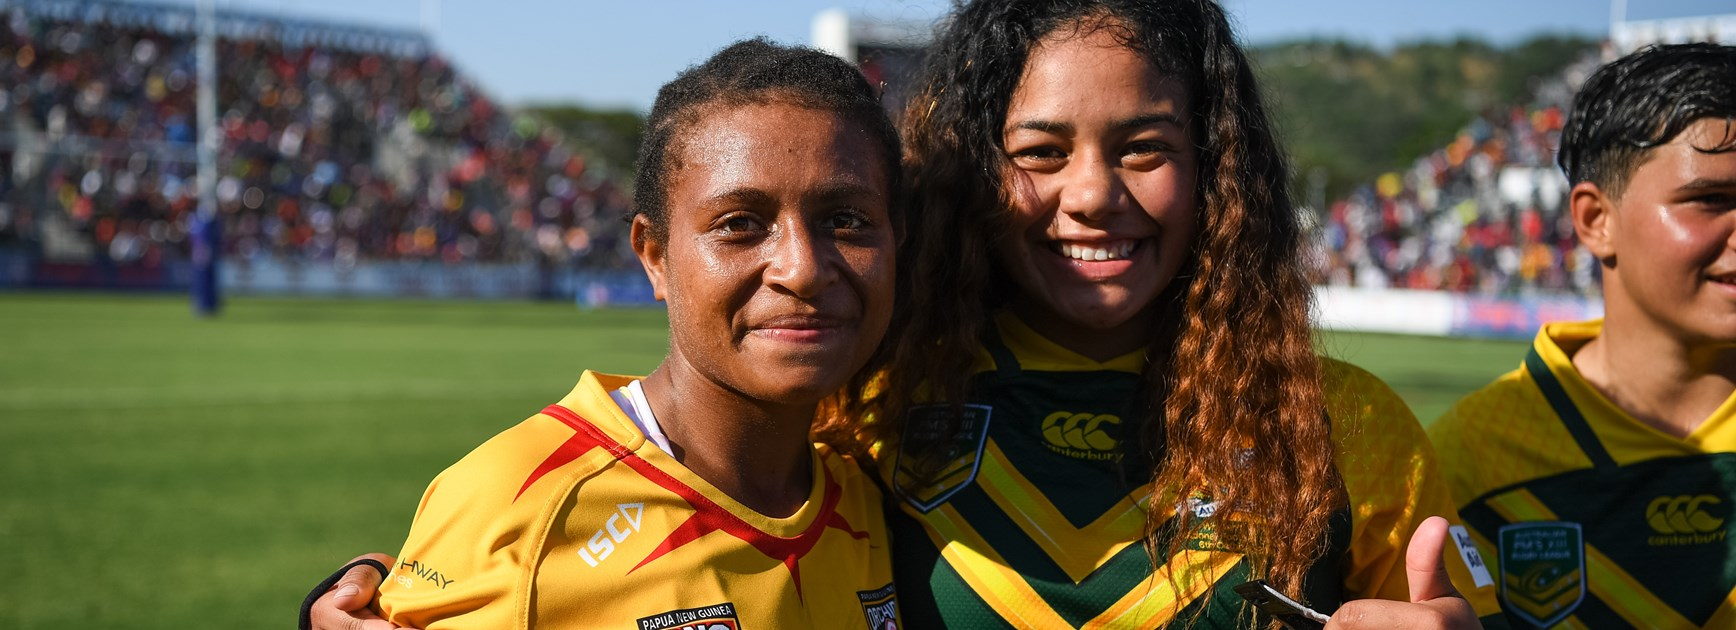 PM's XIII teams encouraging respect towards women in PNG